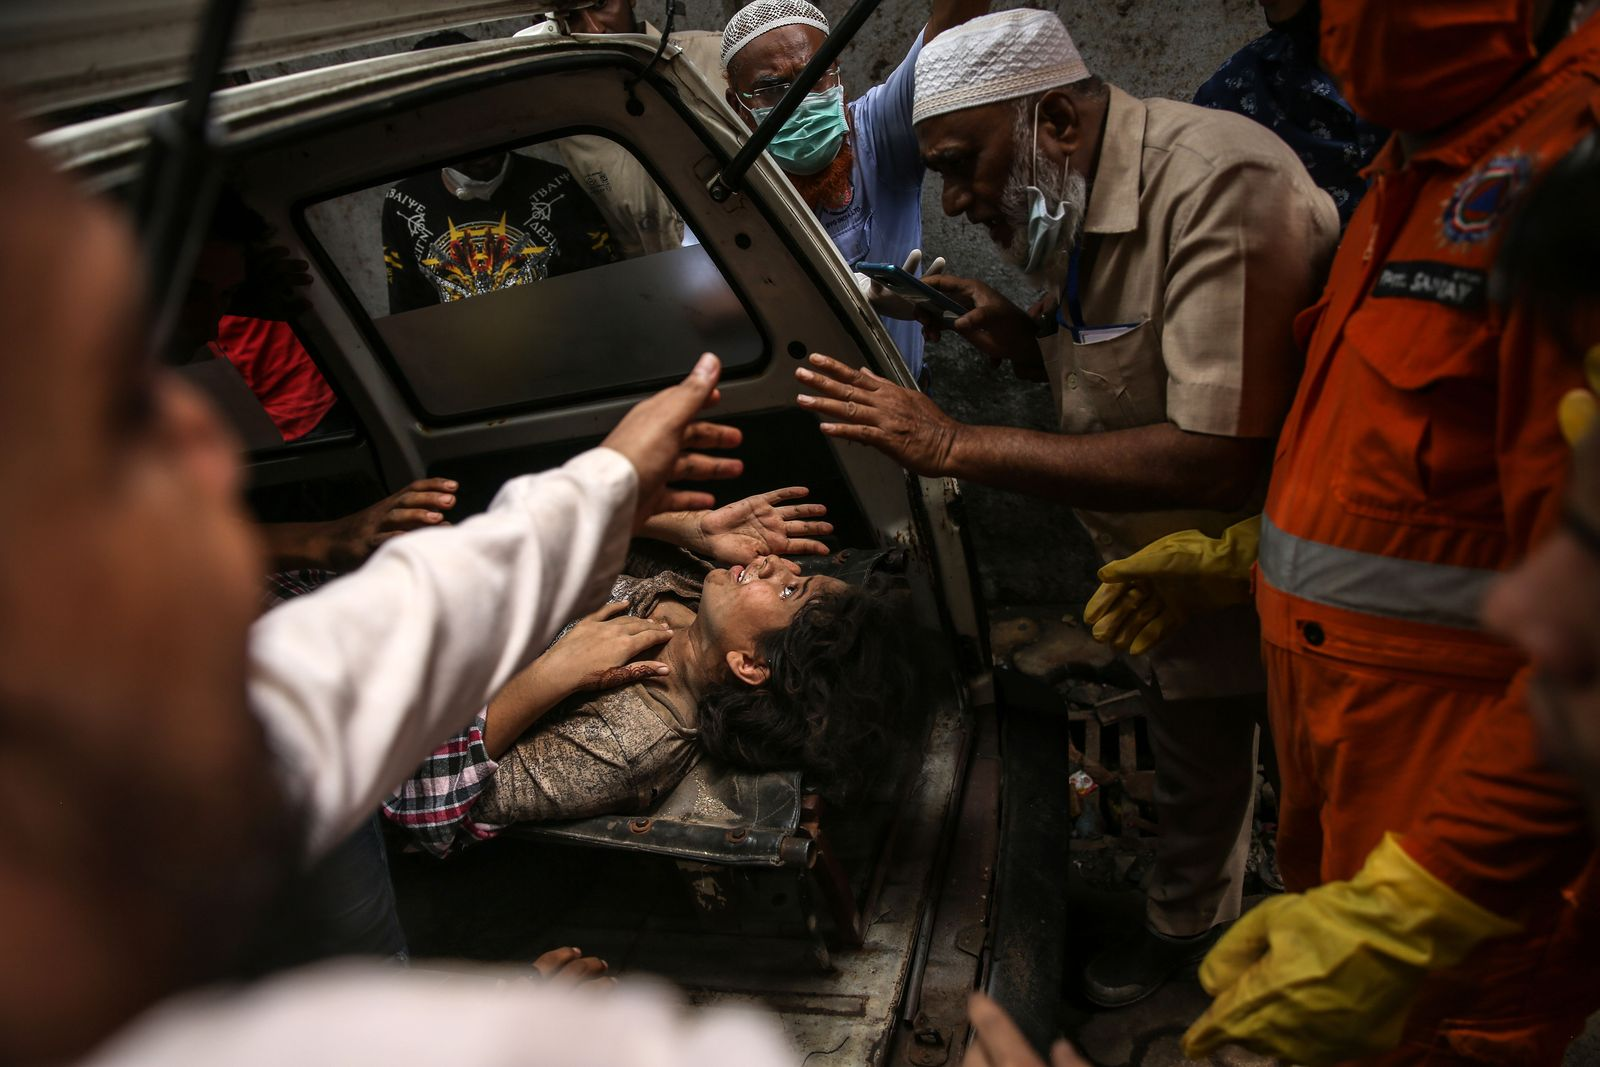 At least 10 dead as building collapses in the outskirts of Mumbai, Thane, India - 21 Sep 2020